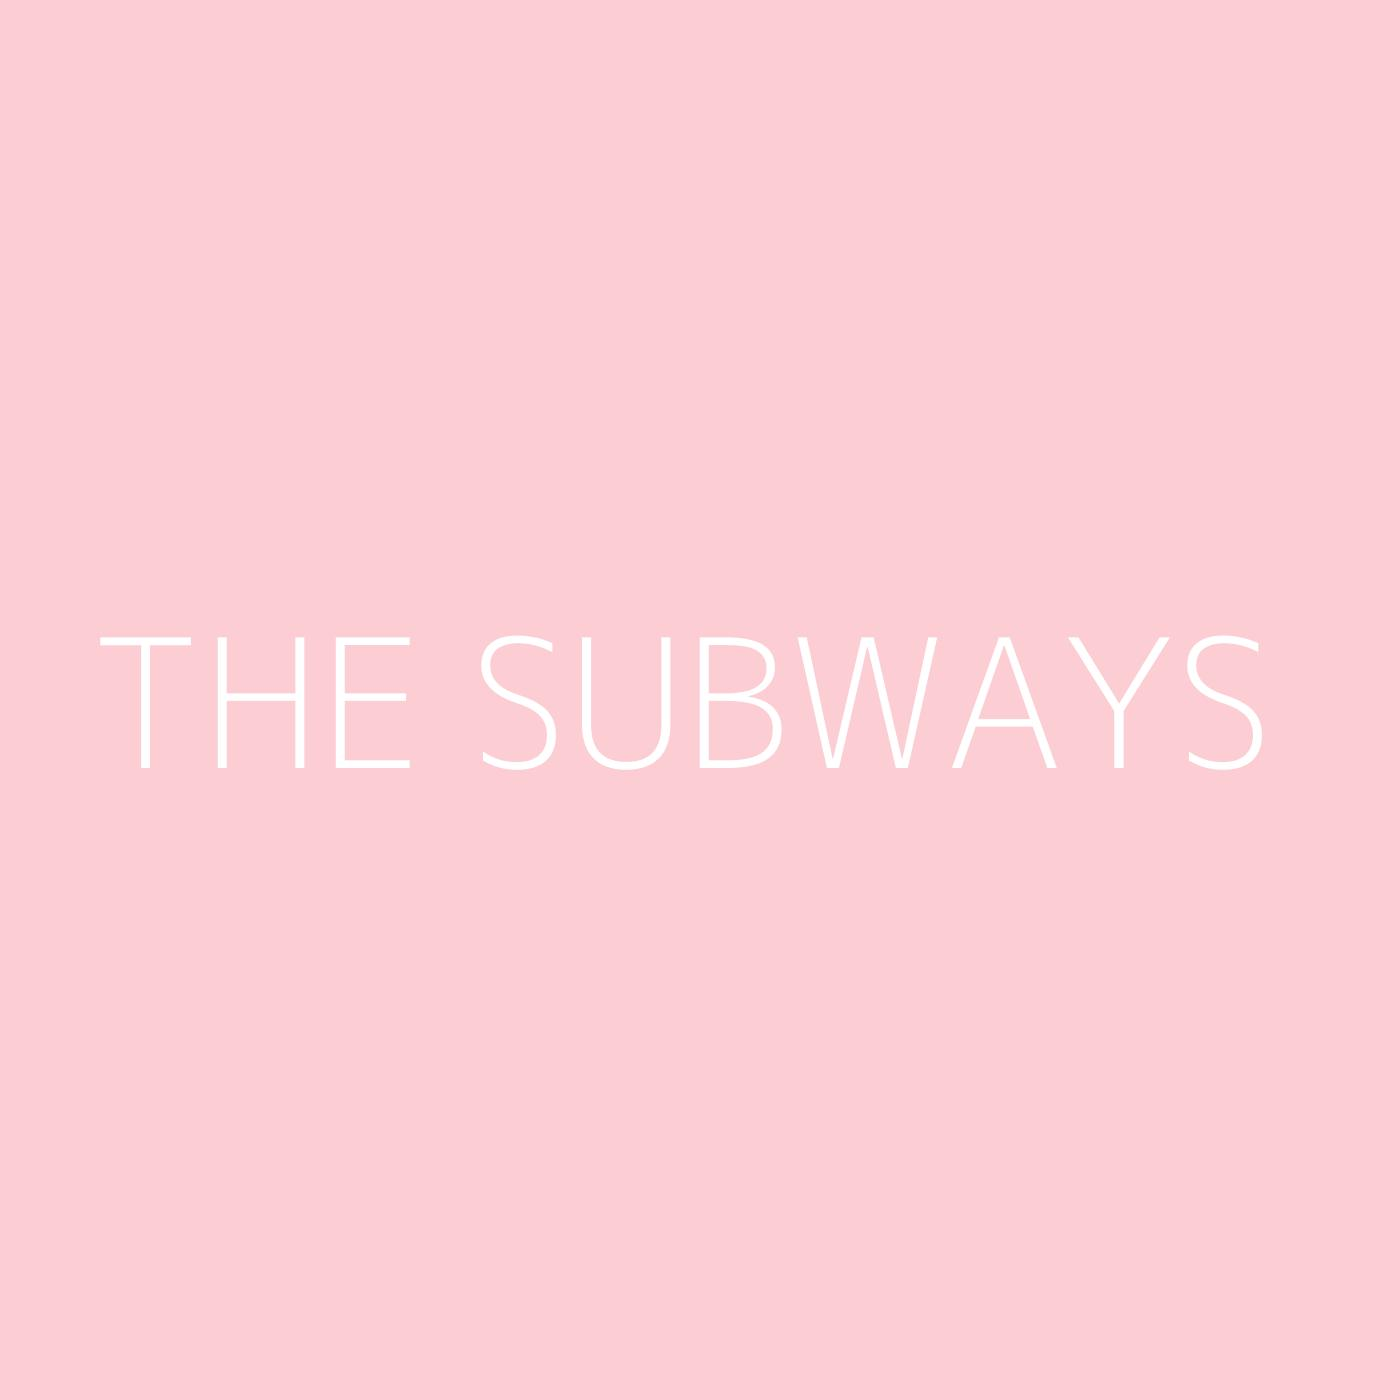 The Subways Playlist Artwork